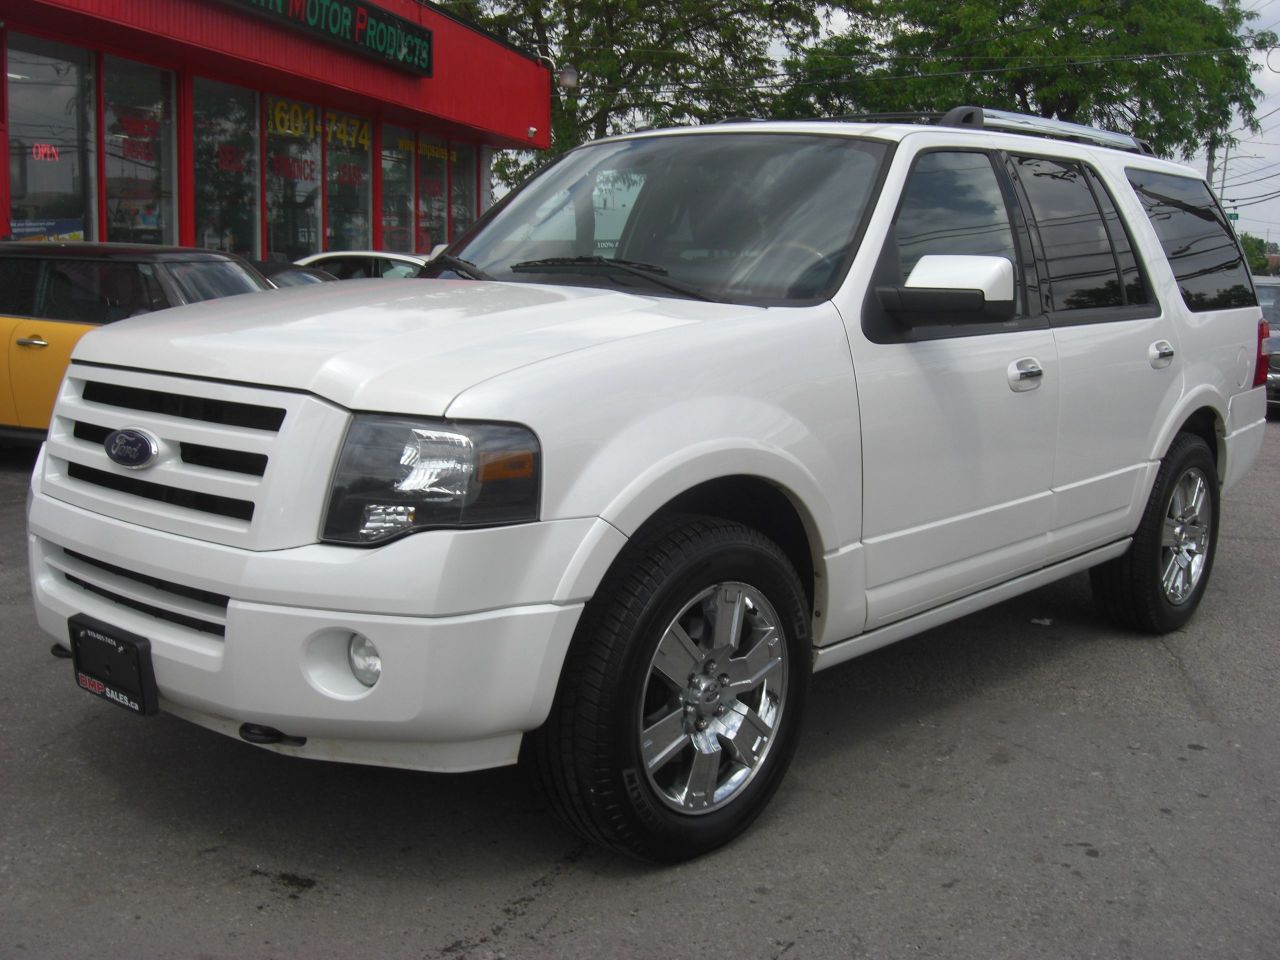 2010 Ford Expedition | Downtown Motor Products